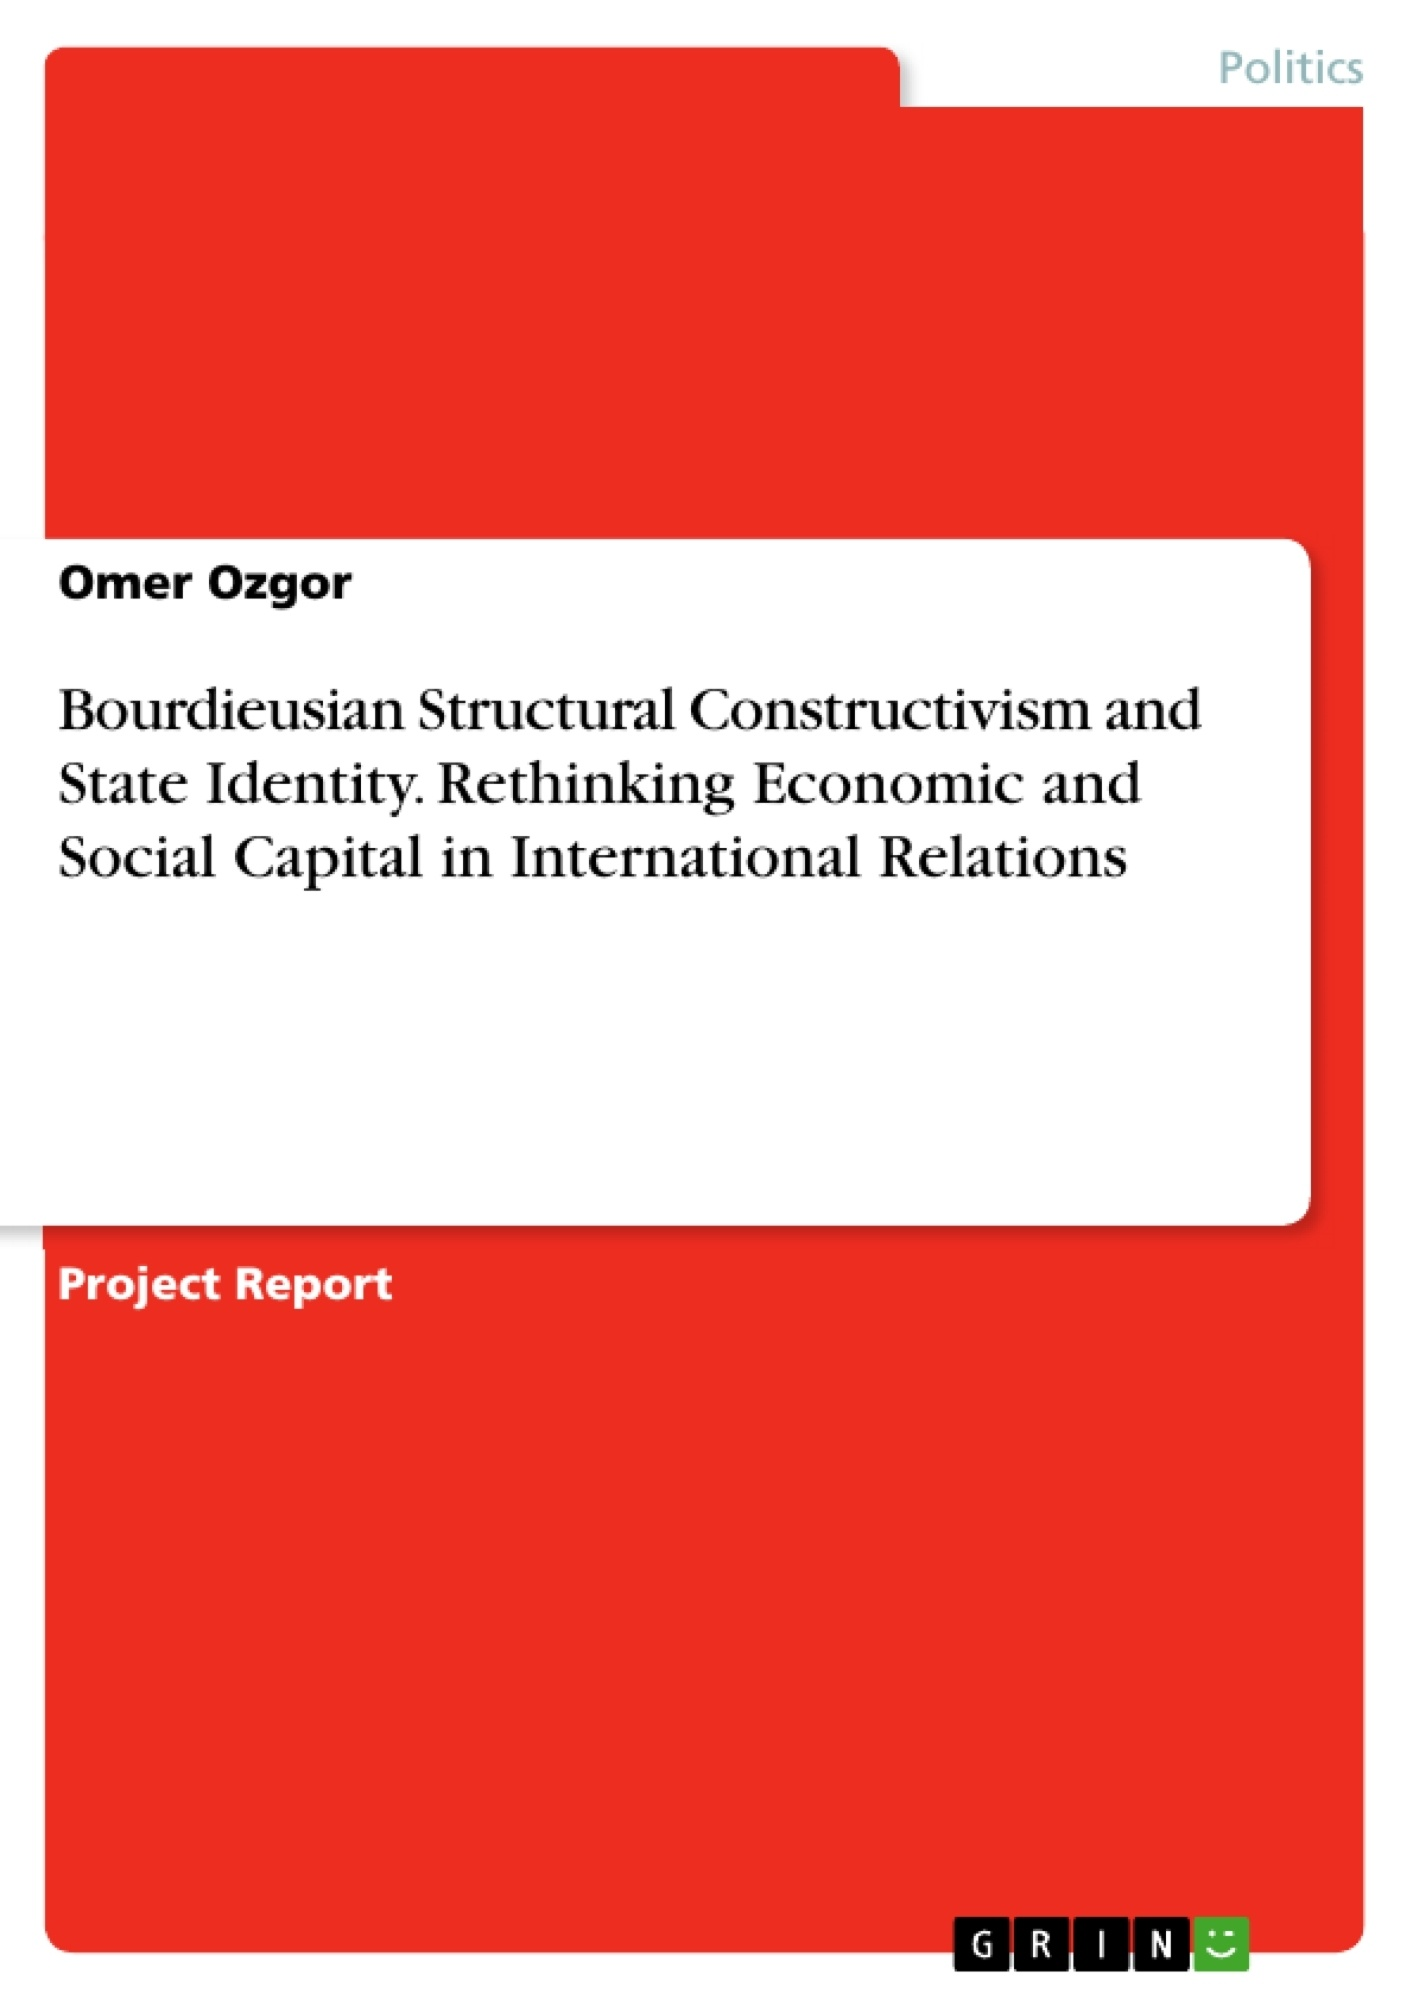 Title: Bourdieusian Structural Constructivism and State Identity. Rethinking Economic and Social Capital in International Relations